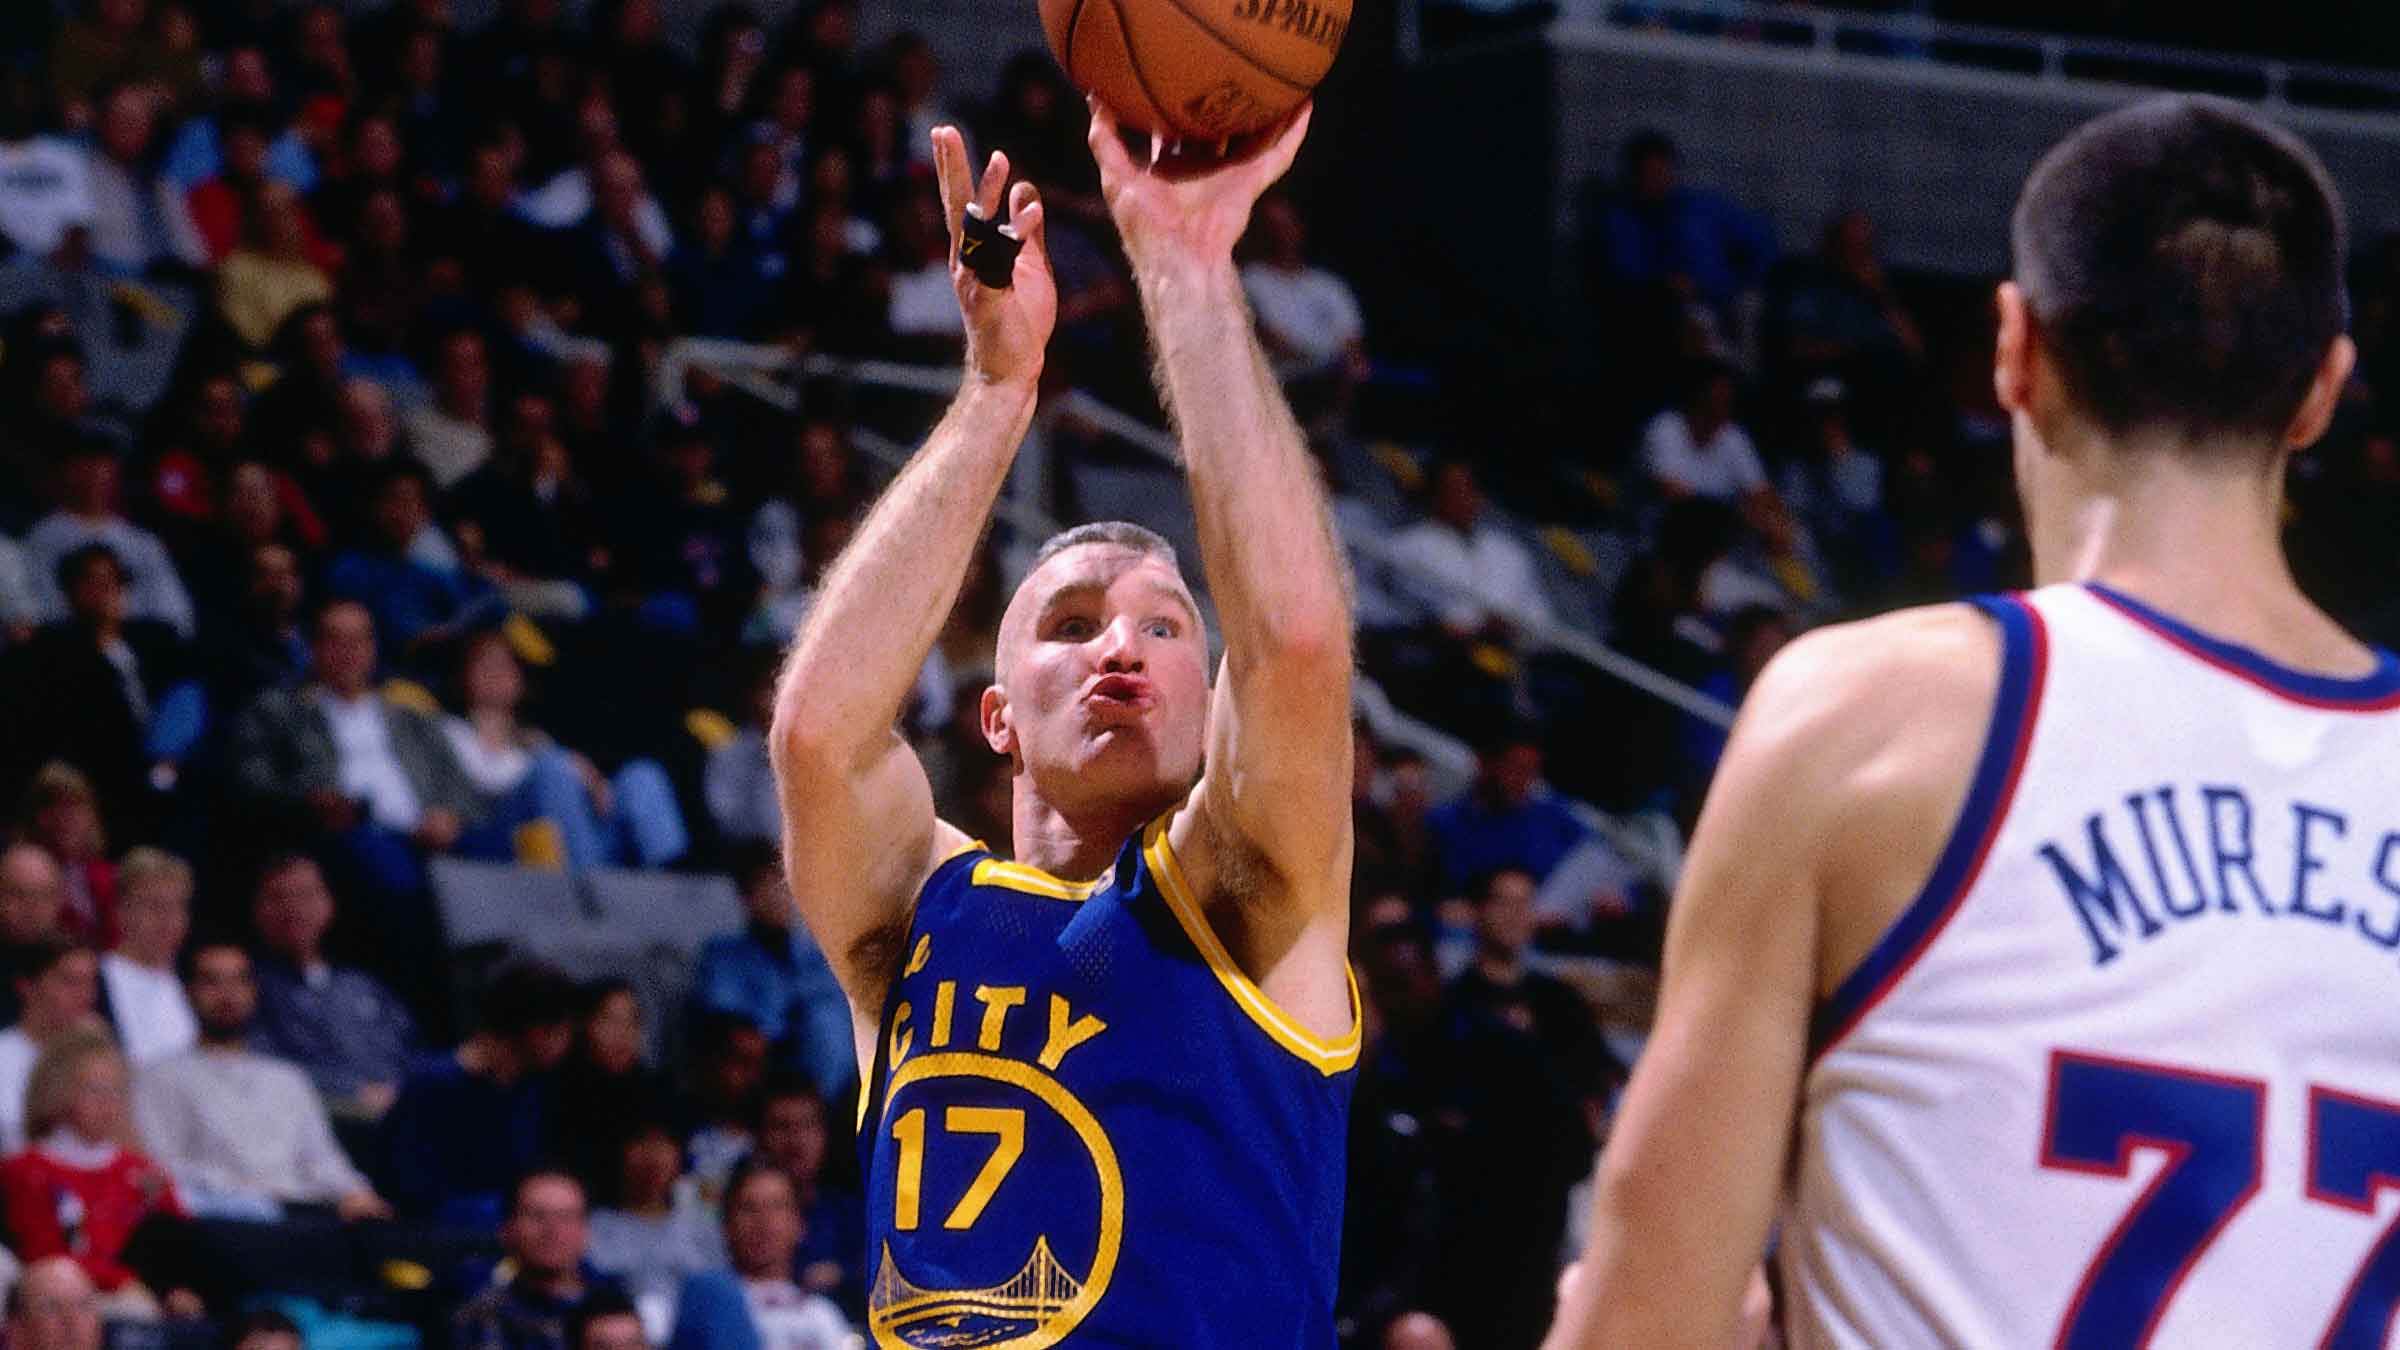 Hall of Fame Feature: Chris Mullin